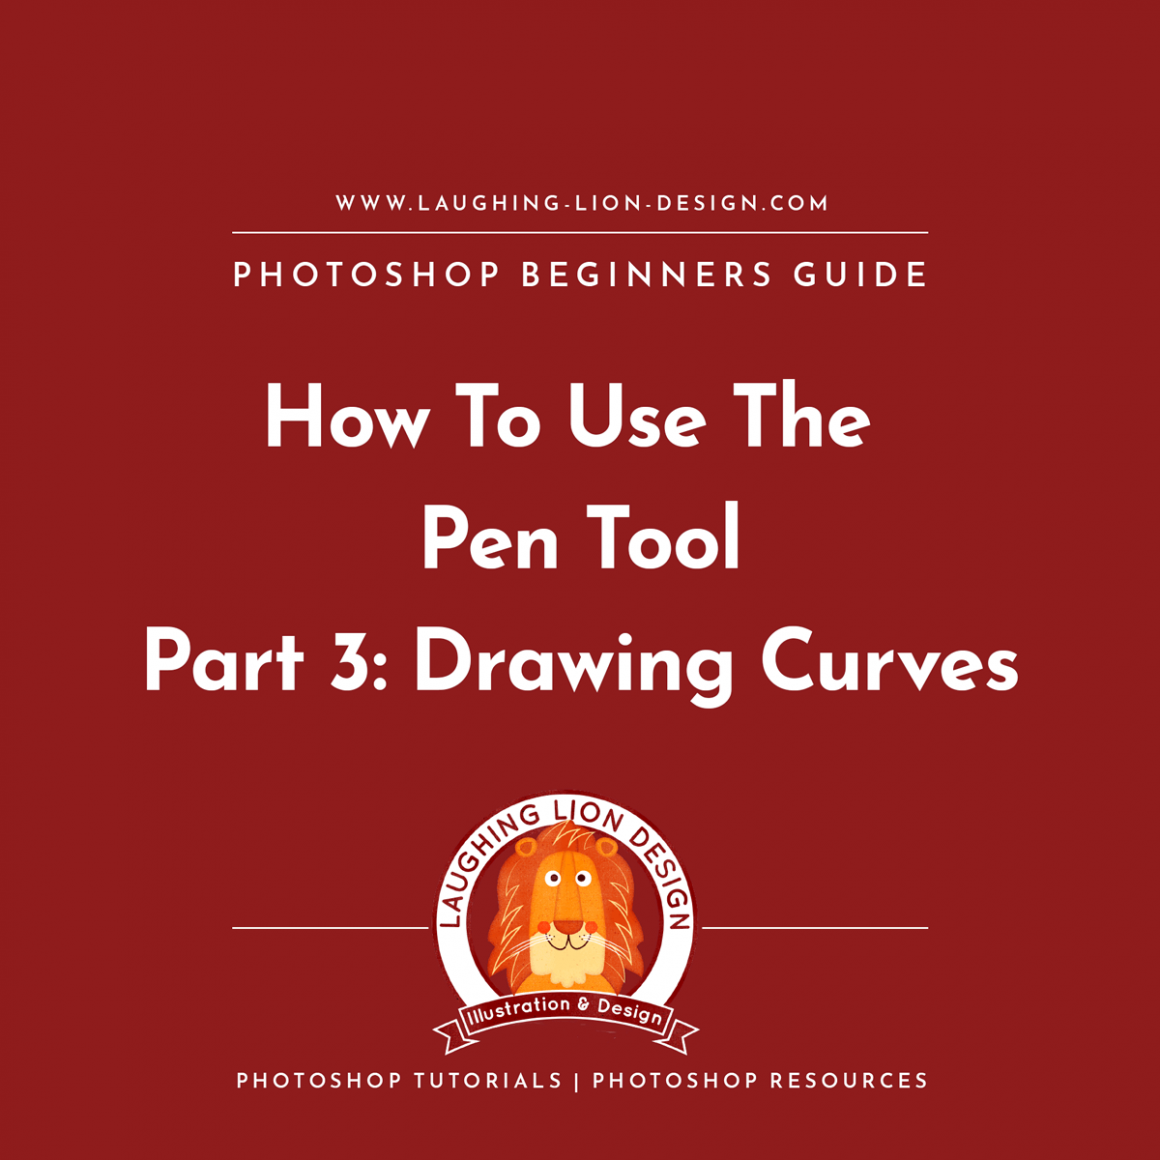 How-To-Use-The-Pen-Tool-In-Photoshop-Part-3-Laughing-Lion-Design